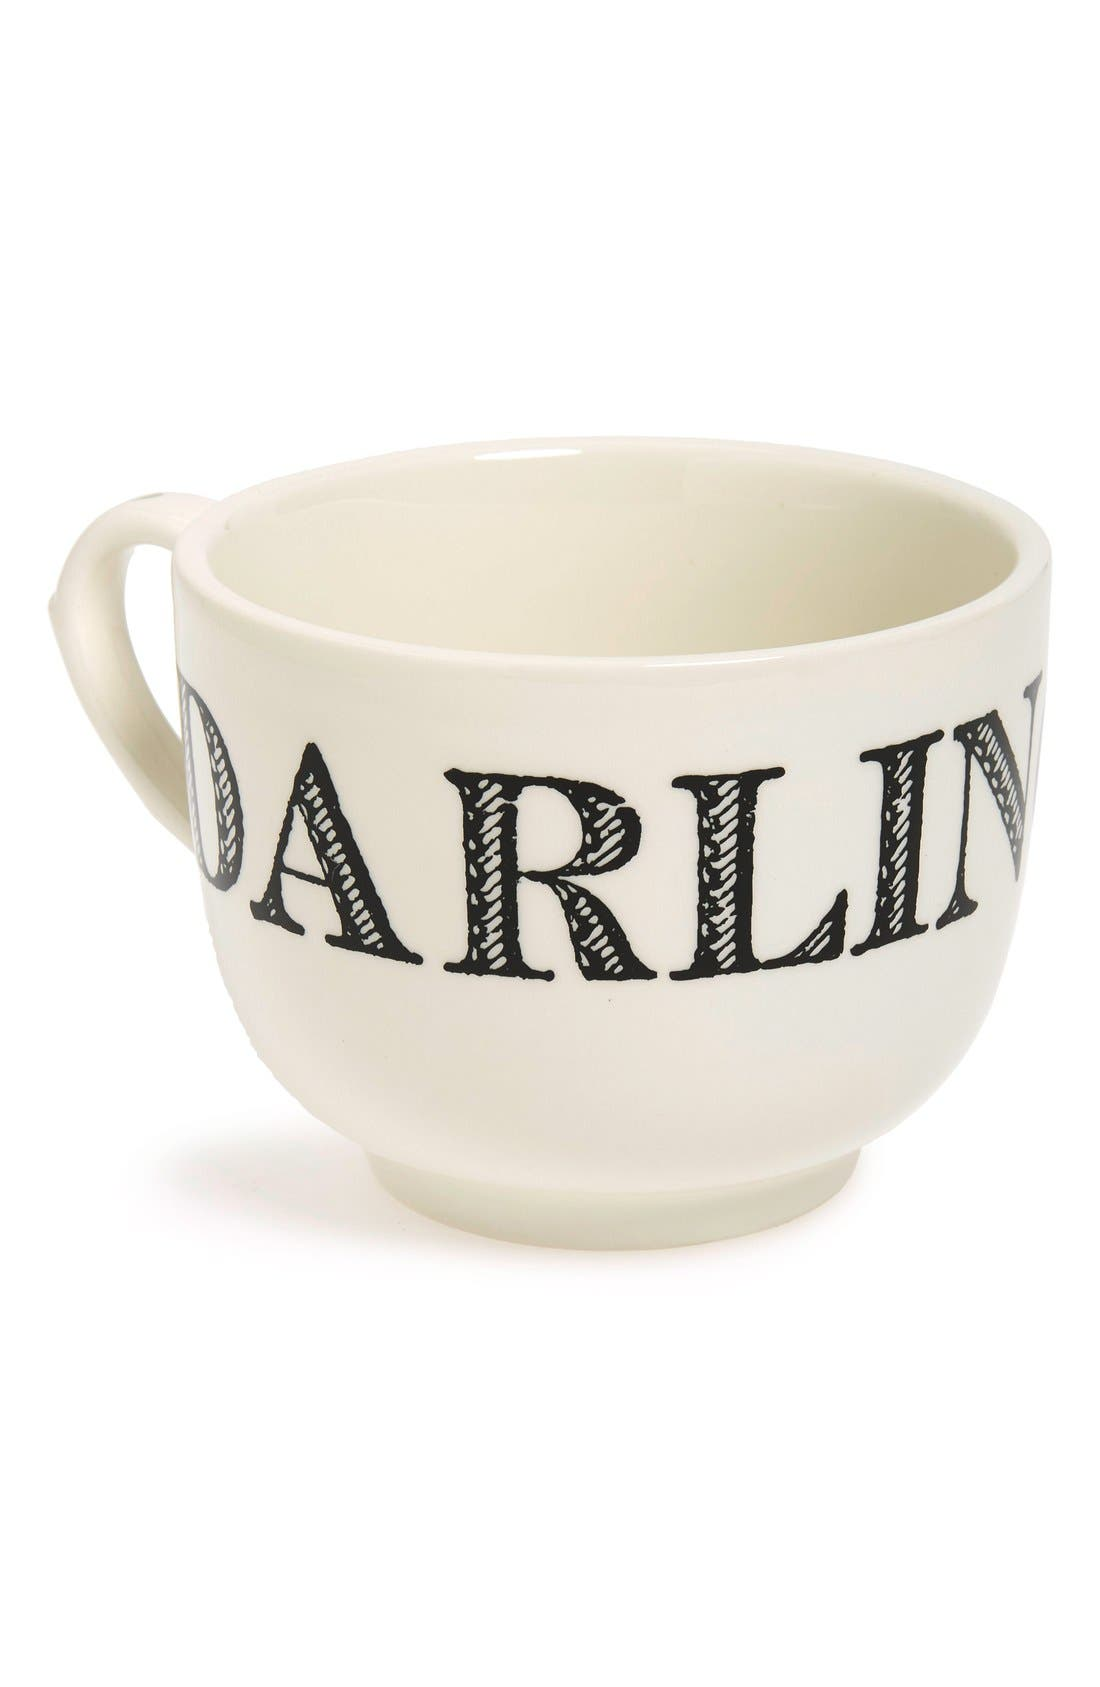 'Grand Cup - Darling' Porcelain Coffee Mug,                         Main,                         color, TRUE BLACK/ MOSS